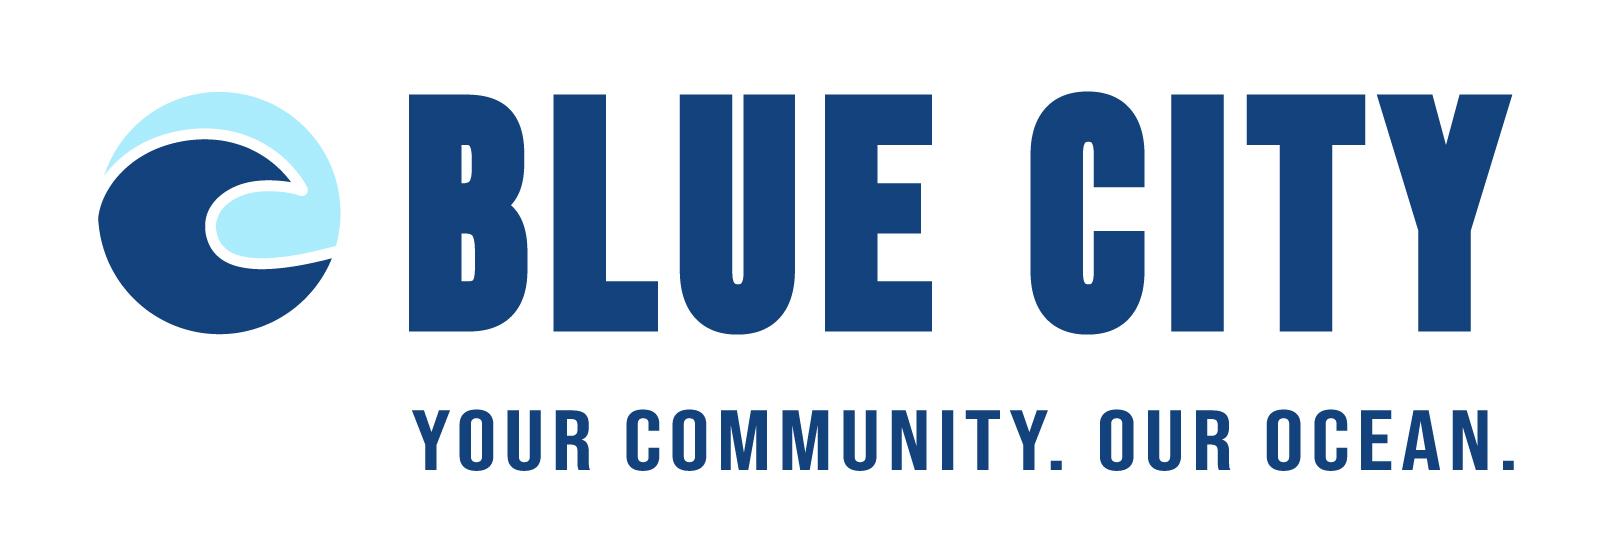 """Malibu Certified as a """"Blue City"""" by Non-Profit Project O"""